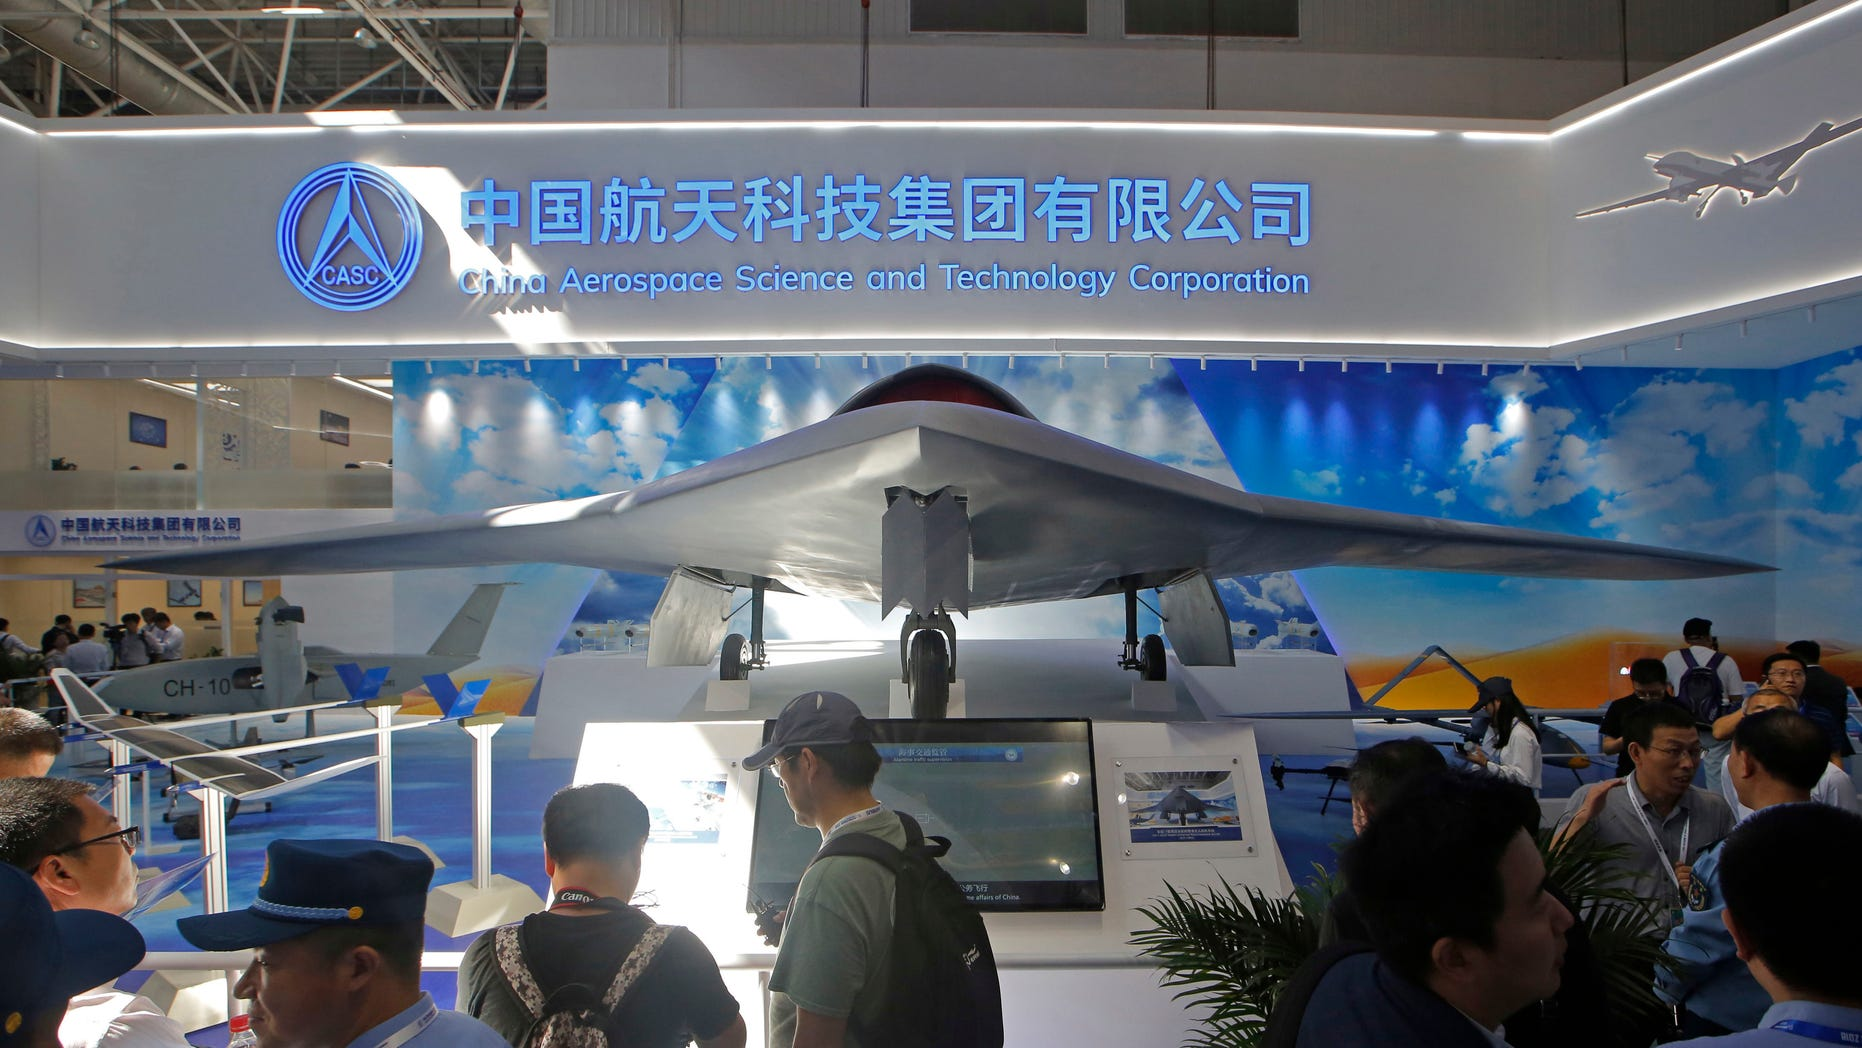 China's new-generation secrecy unmanned quarrel aircraft prototype, a CH-7, is displayed during a 12th China International Aviation and Aerospace Exhibition. (AP Photo/Kin Cheung, File)